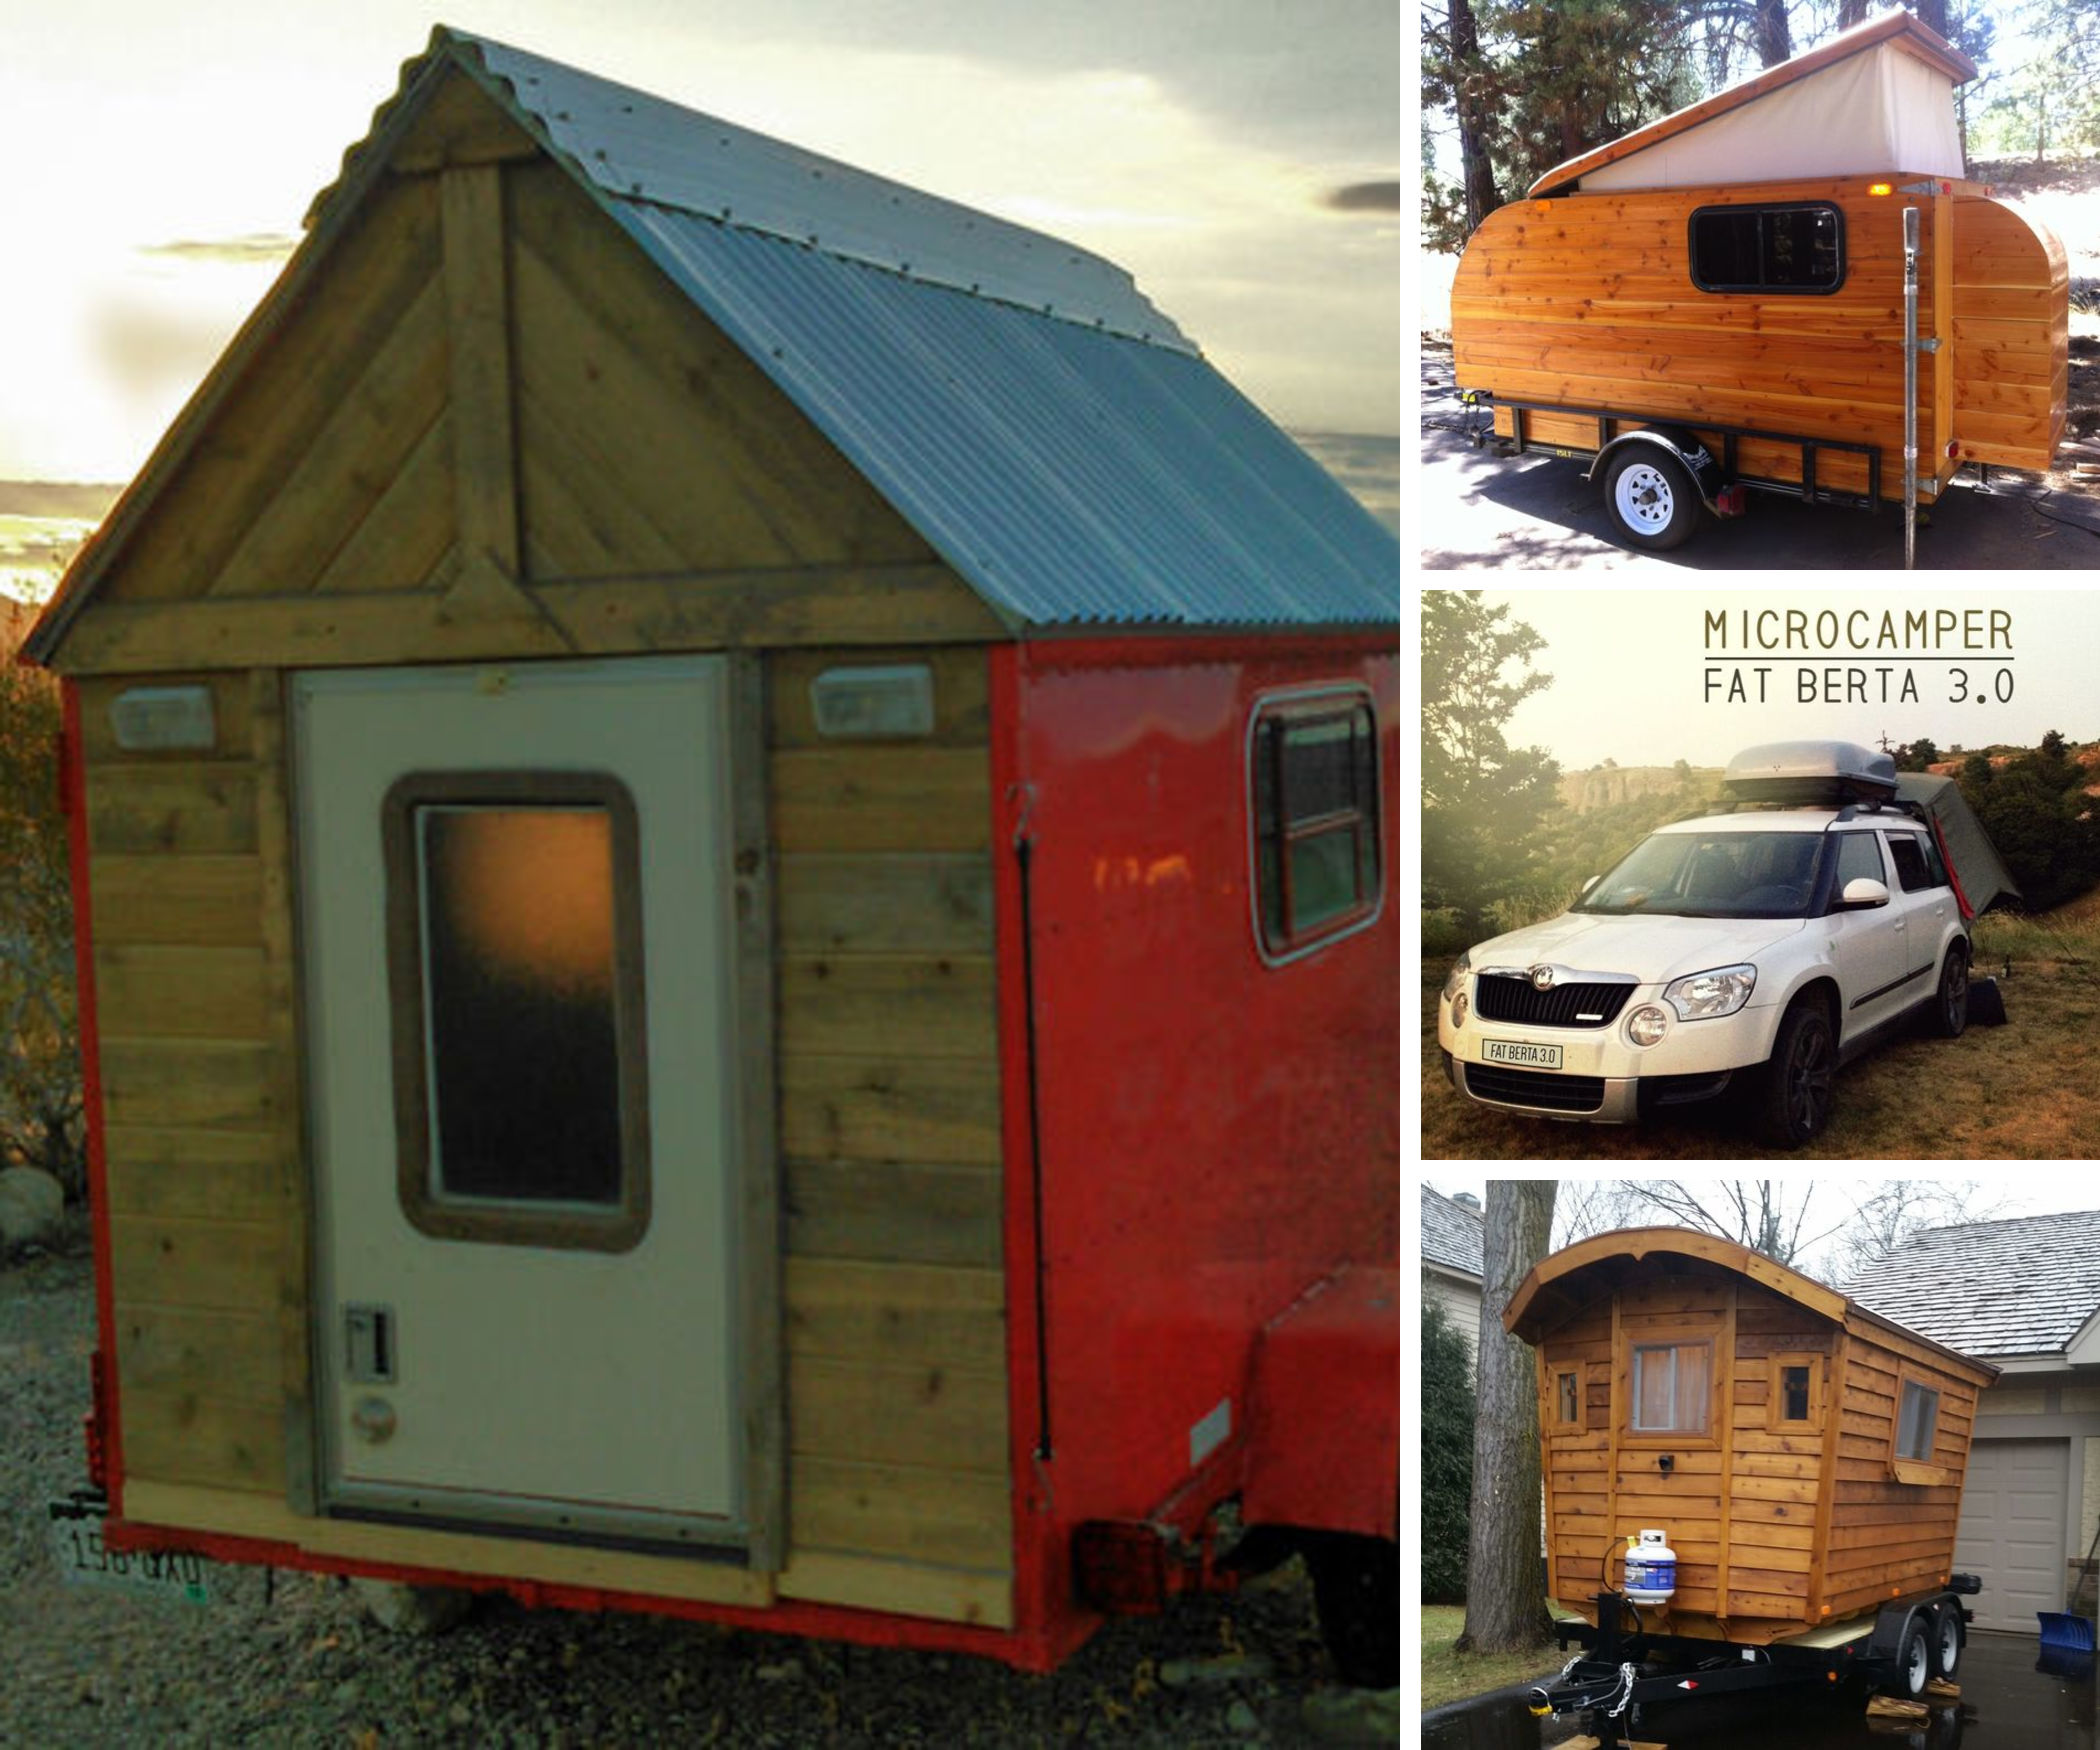 10 Campers You'll Actually Want To Camp In